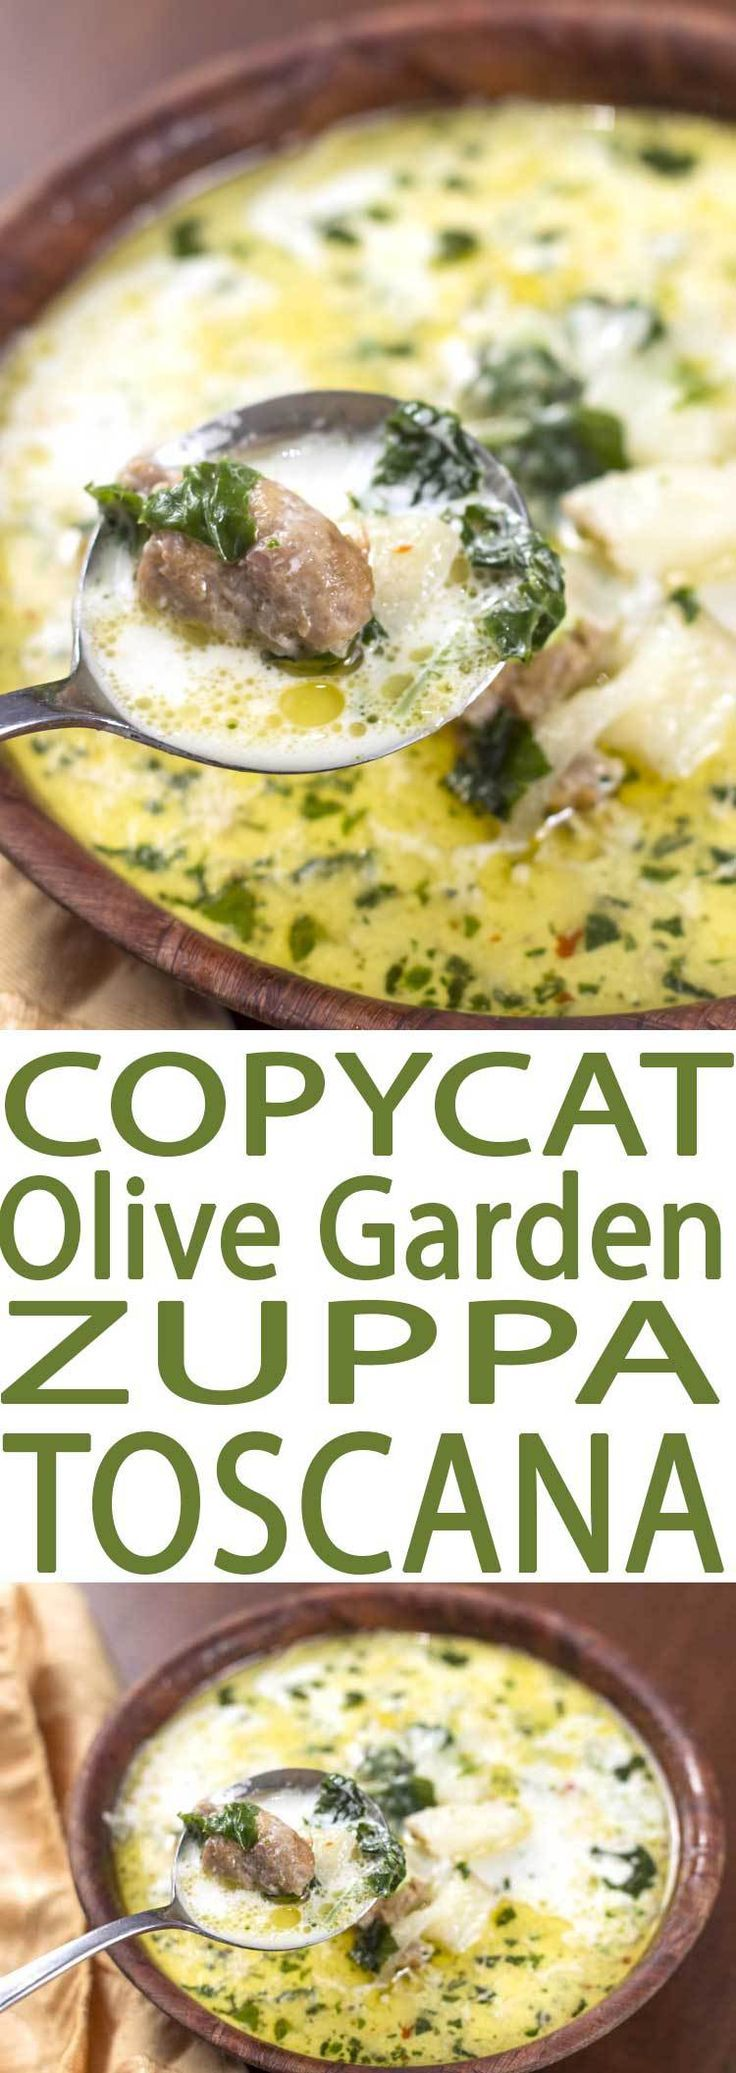 Best Olive Garden Zuppa Toscana Copycat Recipe. Love Olive Garden soup? You will love this easy Zuppa Toscana recipe.